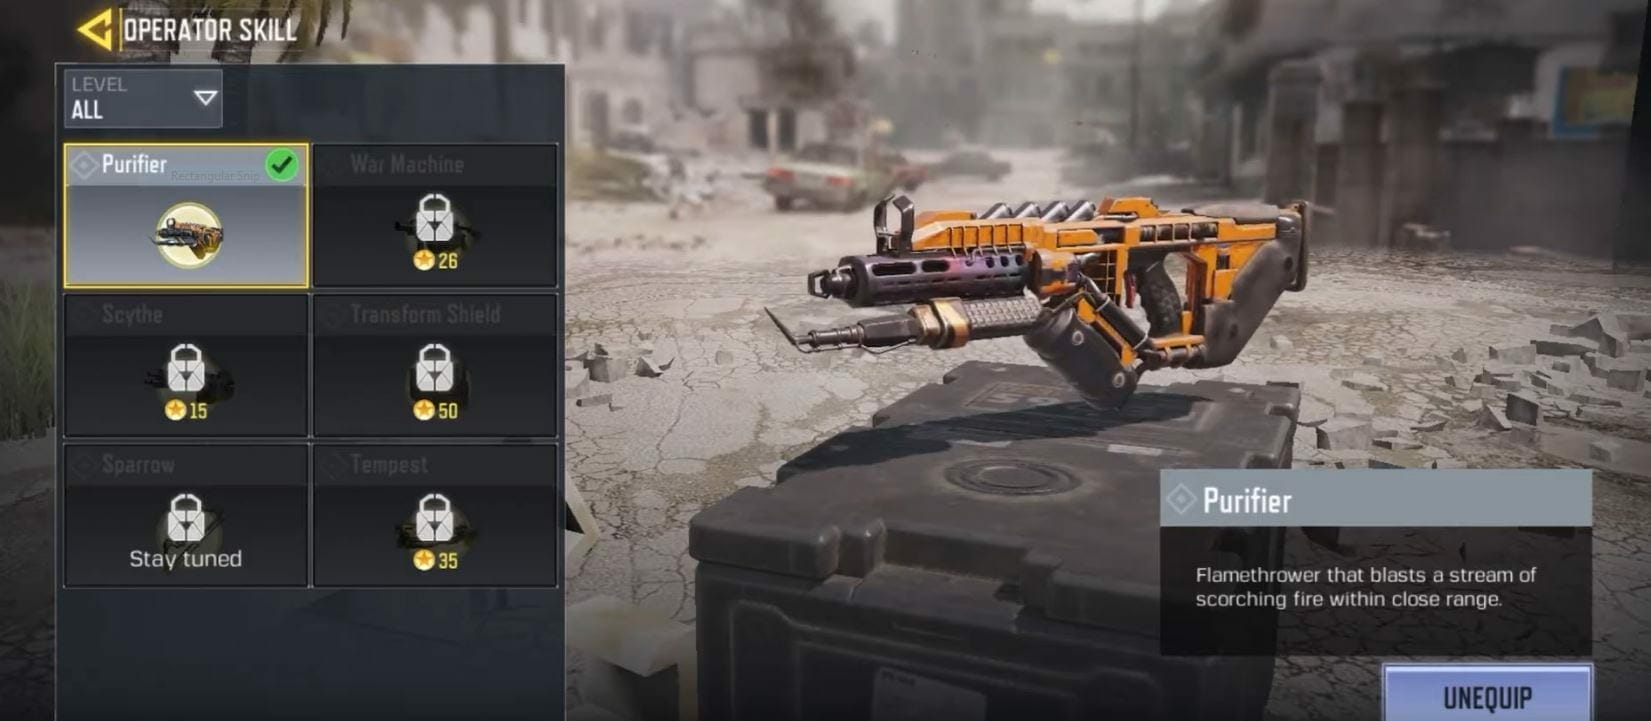 Operator Skill 1 - Cod Mobile Season 1 Week 5 Challenges Guides for MP and Battle Royale